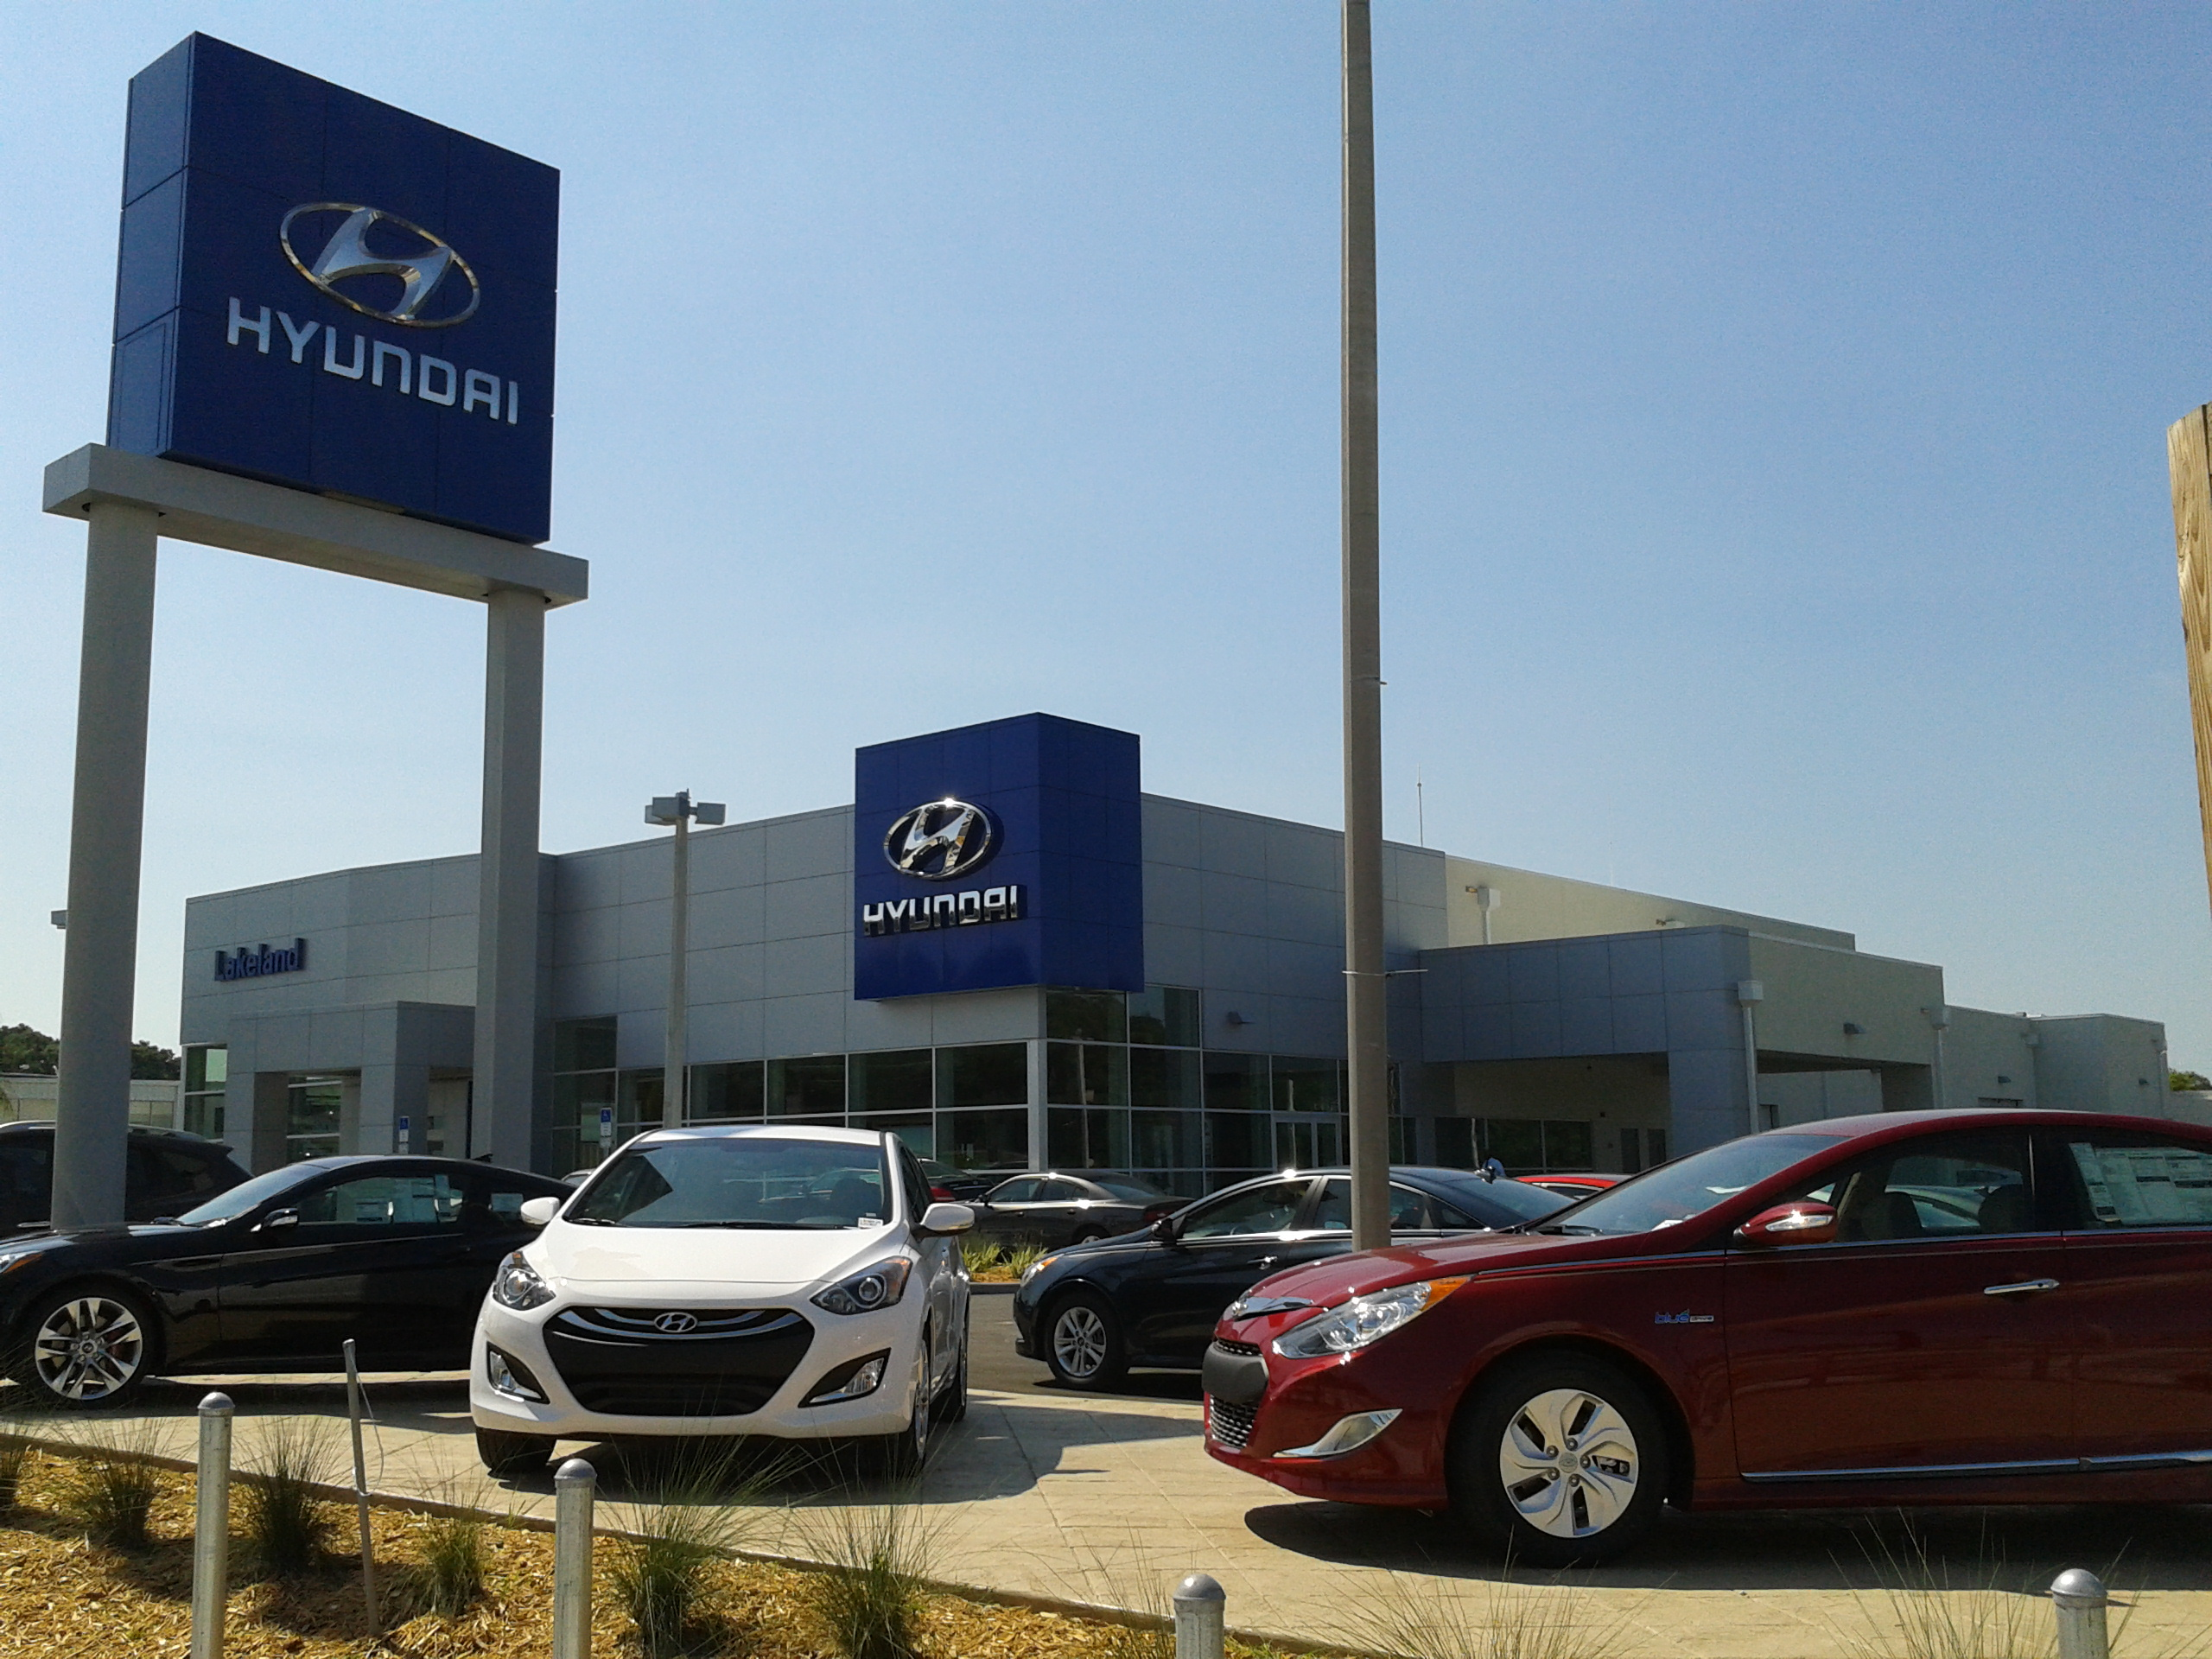 Lakeland hyundai in lakeland fl 863 236 9 for Lakeland motor vehicle and driver license services lakeland fl